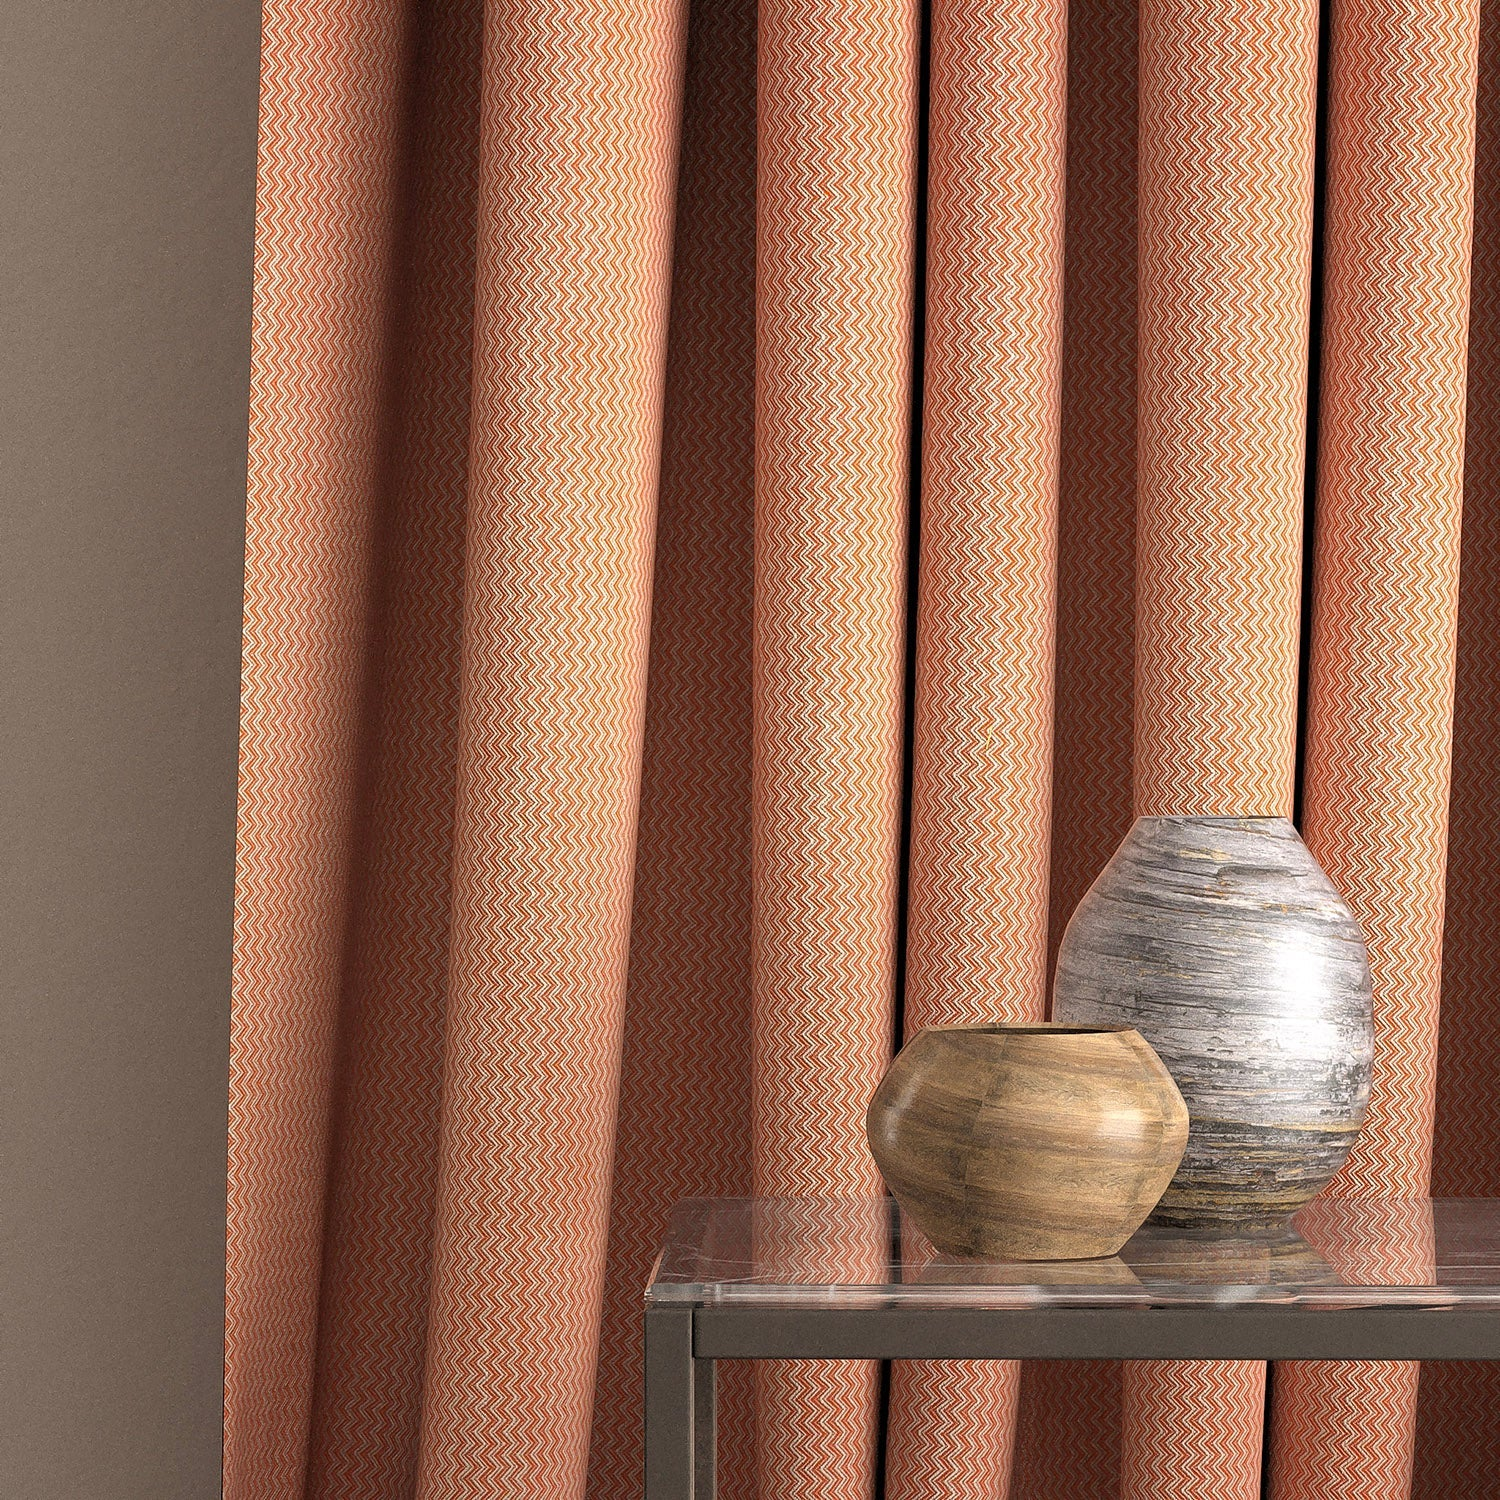 Curtain in a orange and neutral zig zag weave fabric with a stain resistant finish